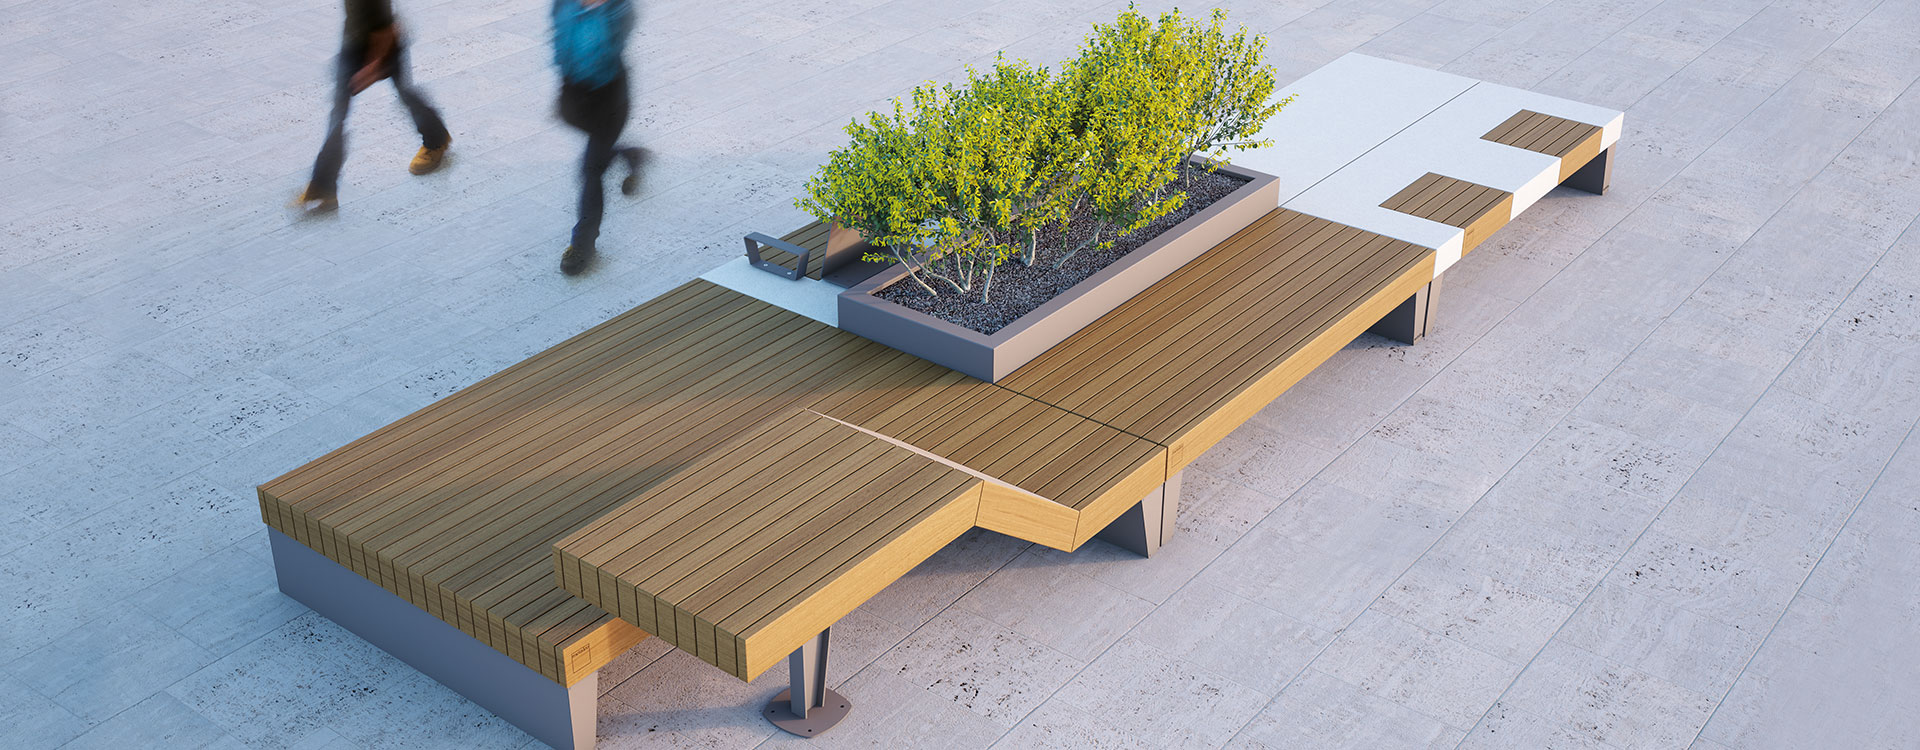 Introducing the Isolaurbana Seating and Planter Collection